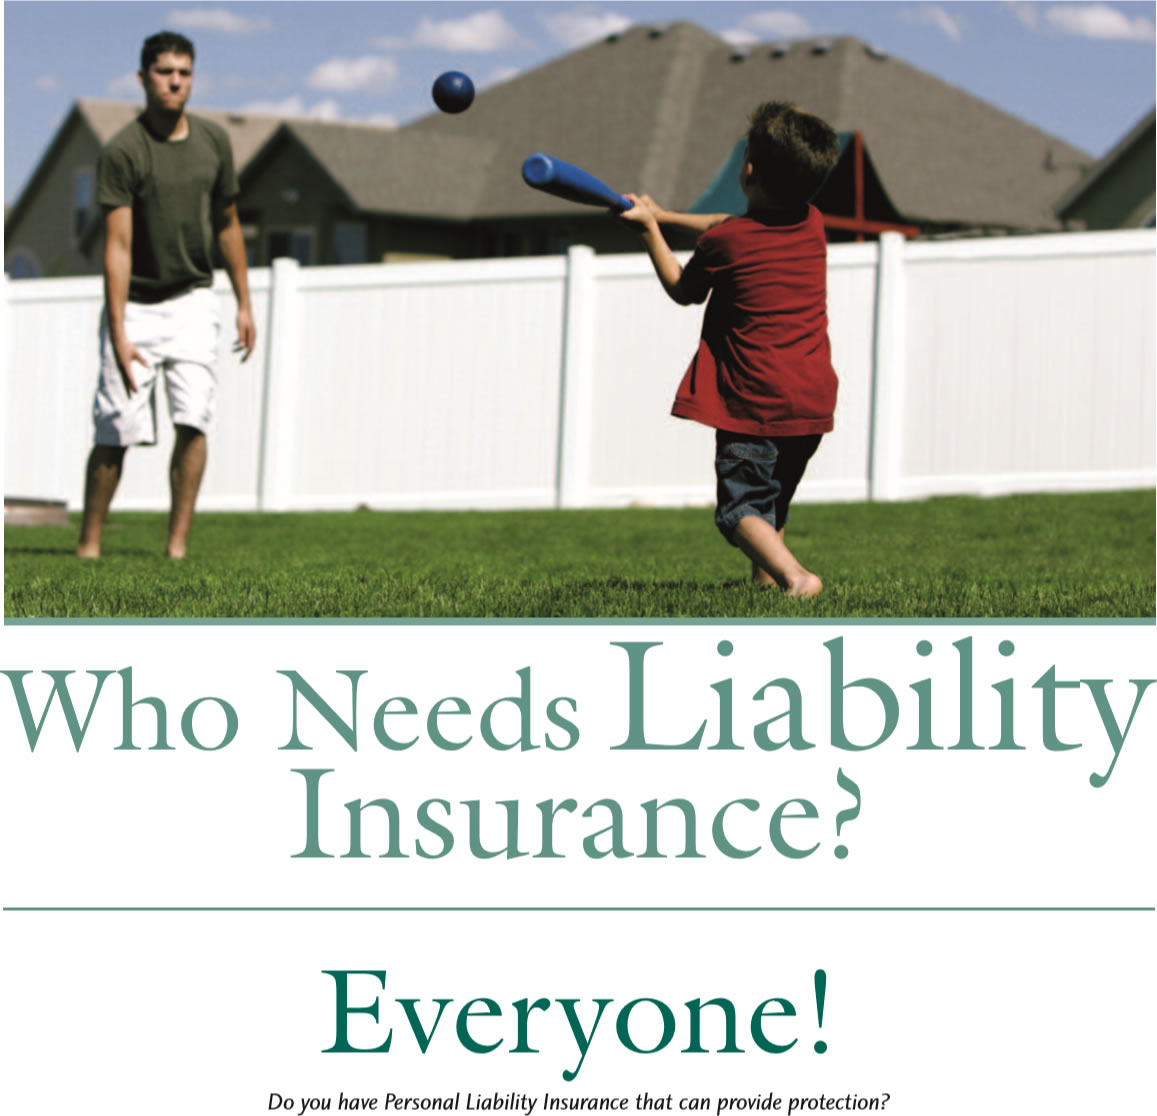 liability insurance mcgregor texas - sneed insurance agency